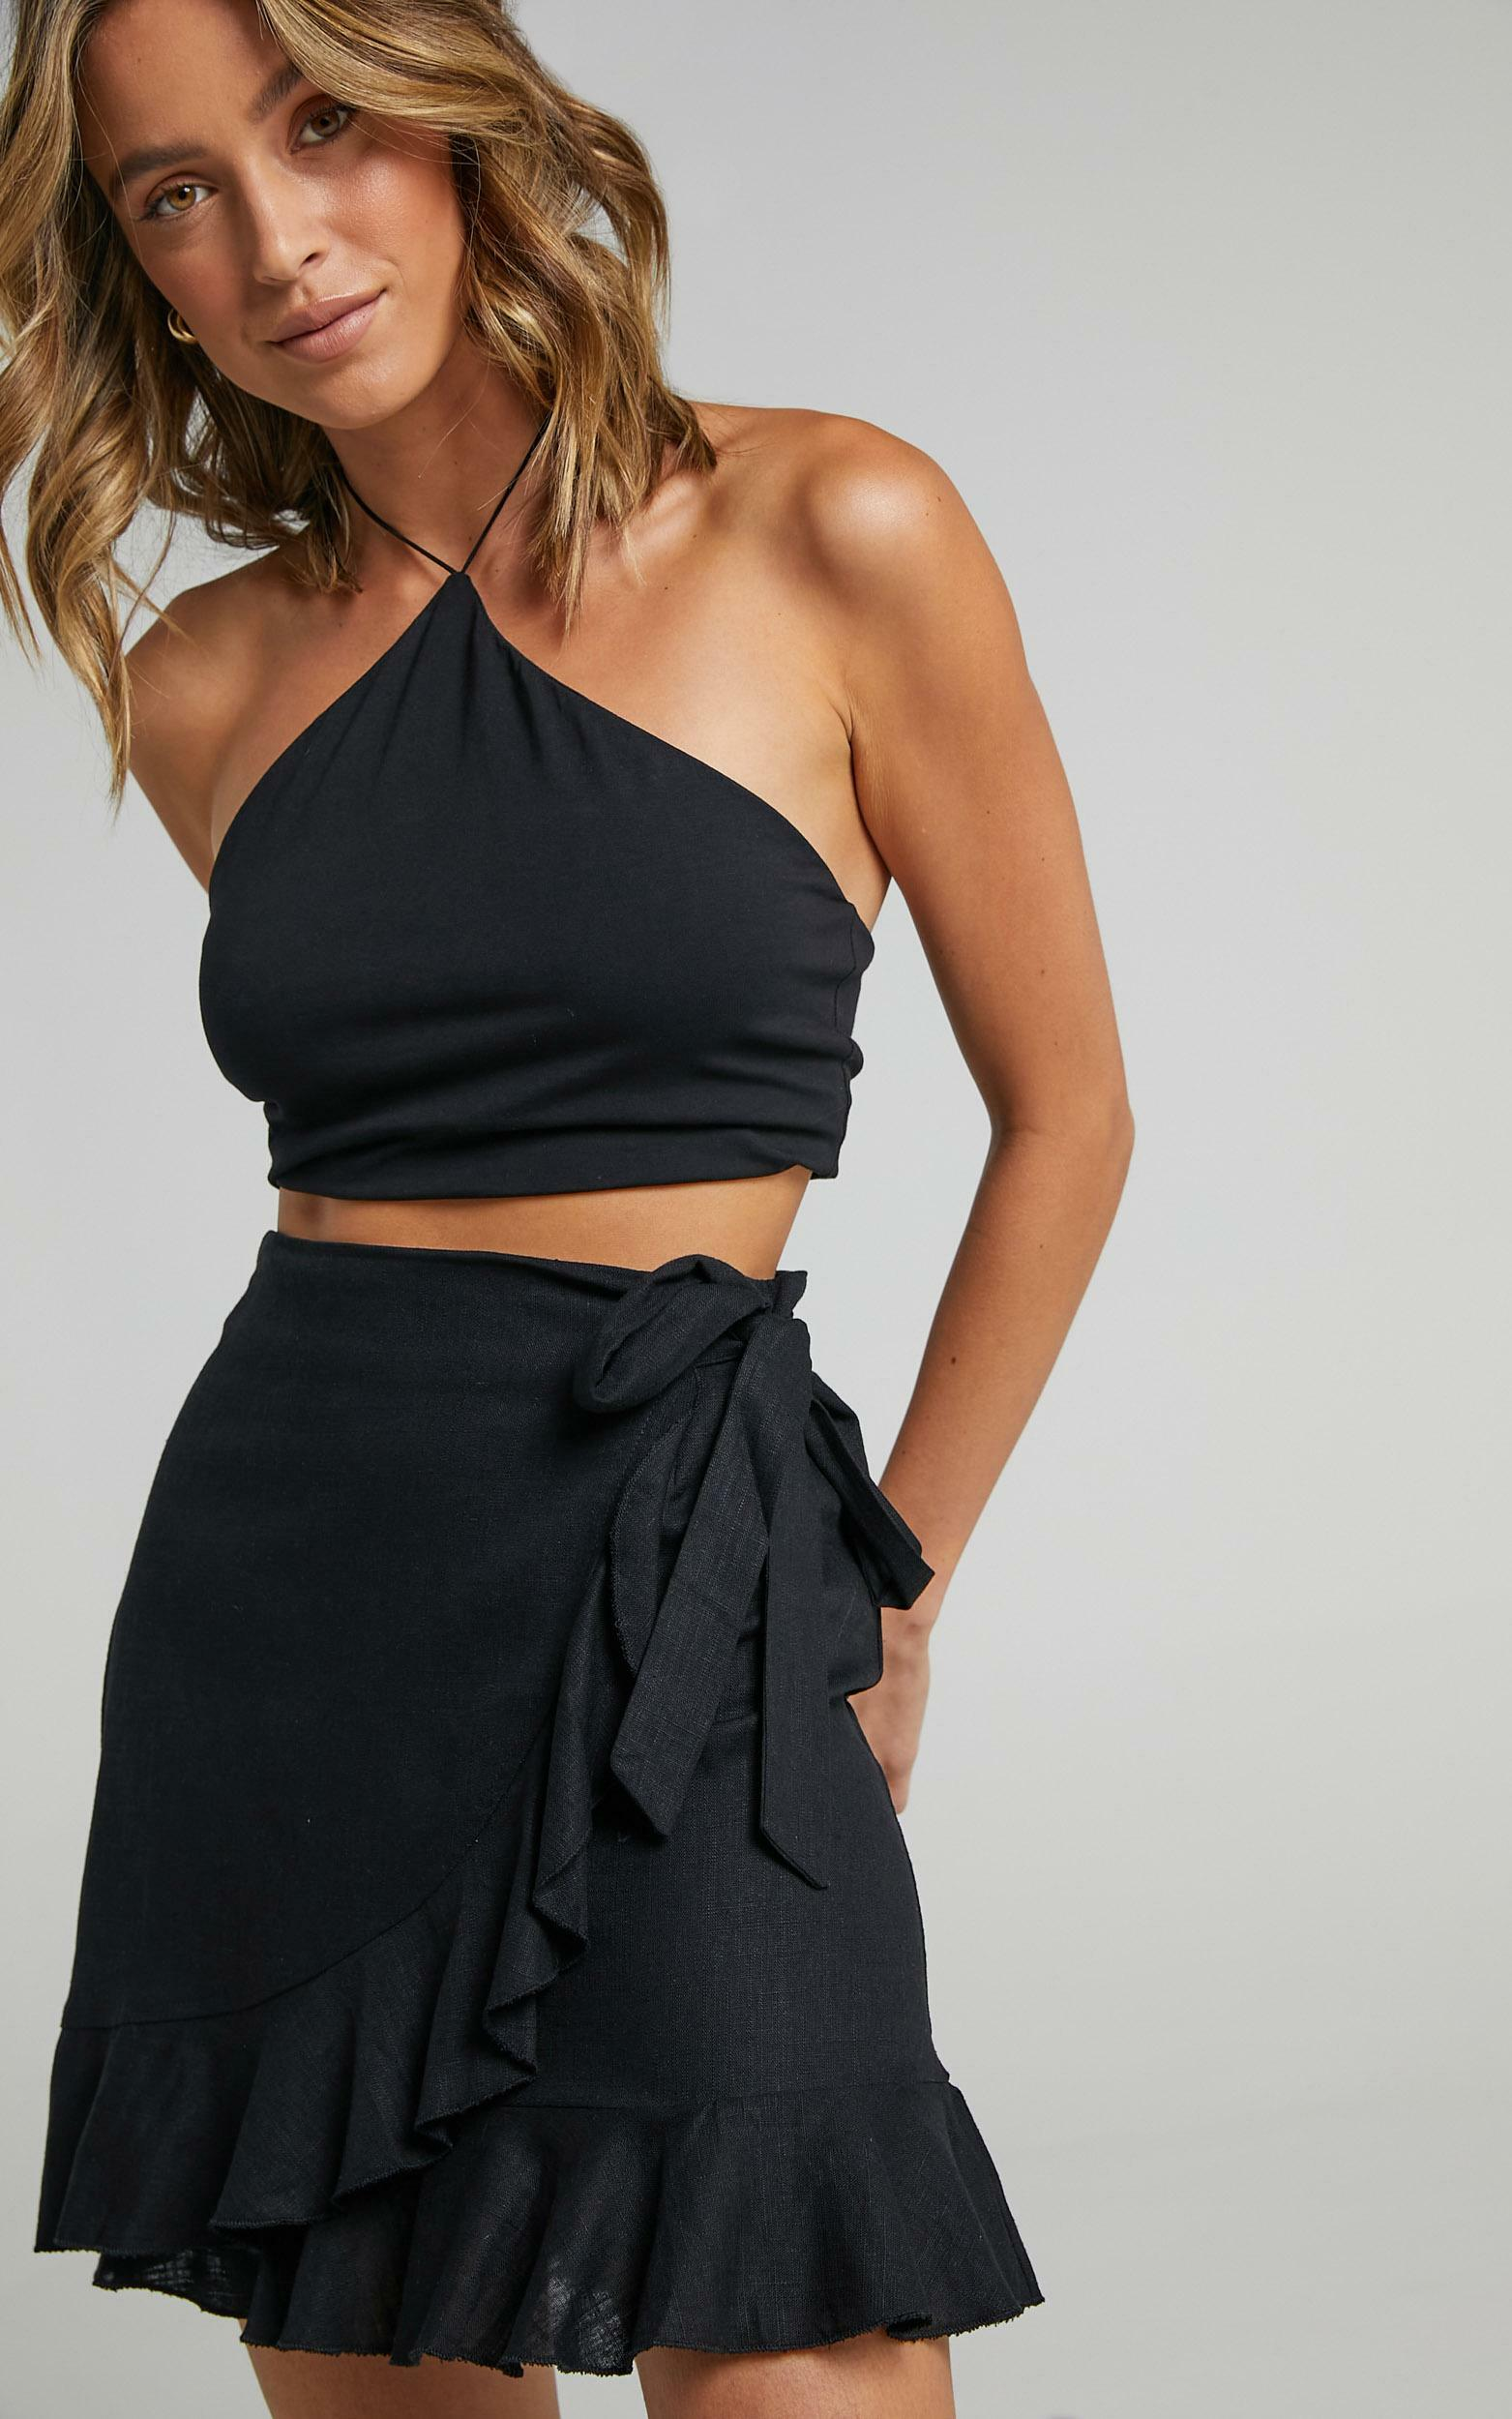 Over And Under Skirt in Black Linen Look - 06, BLK14, hi-res image number null